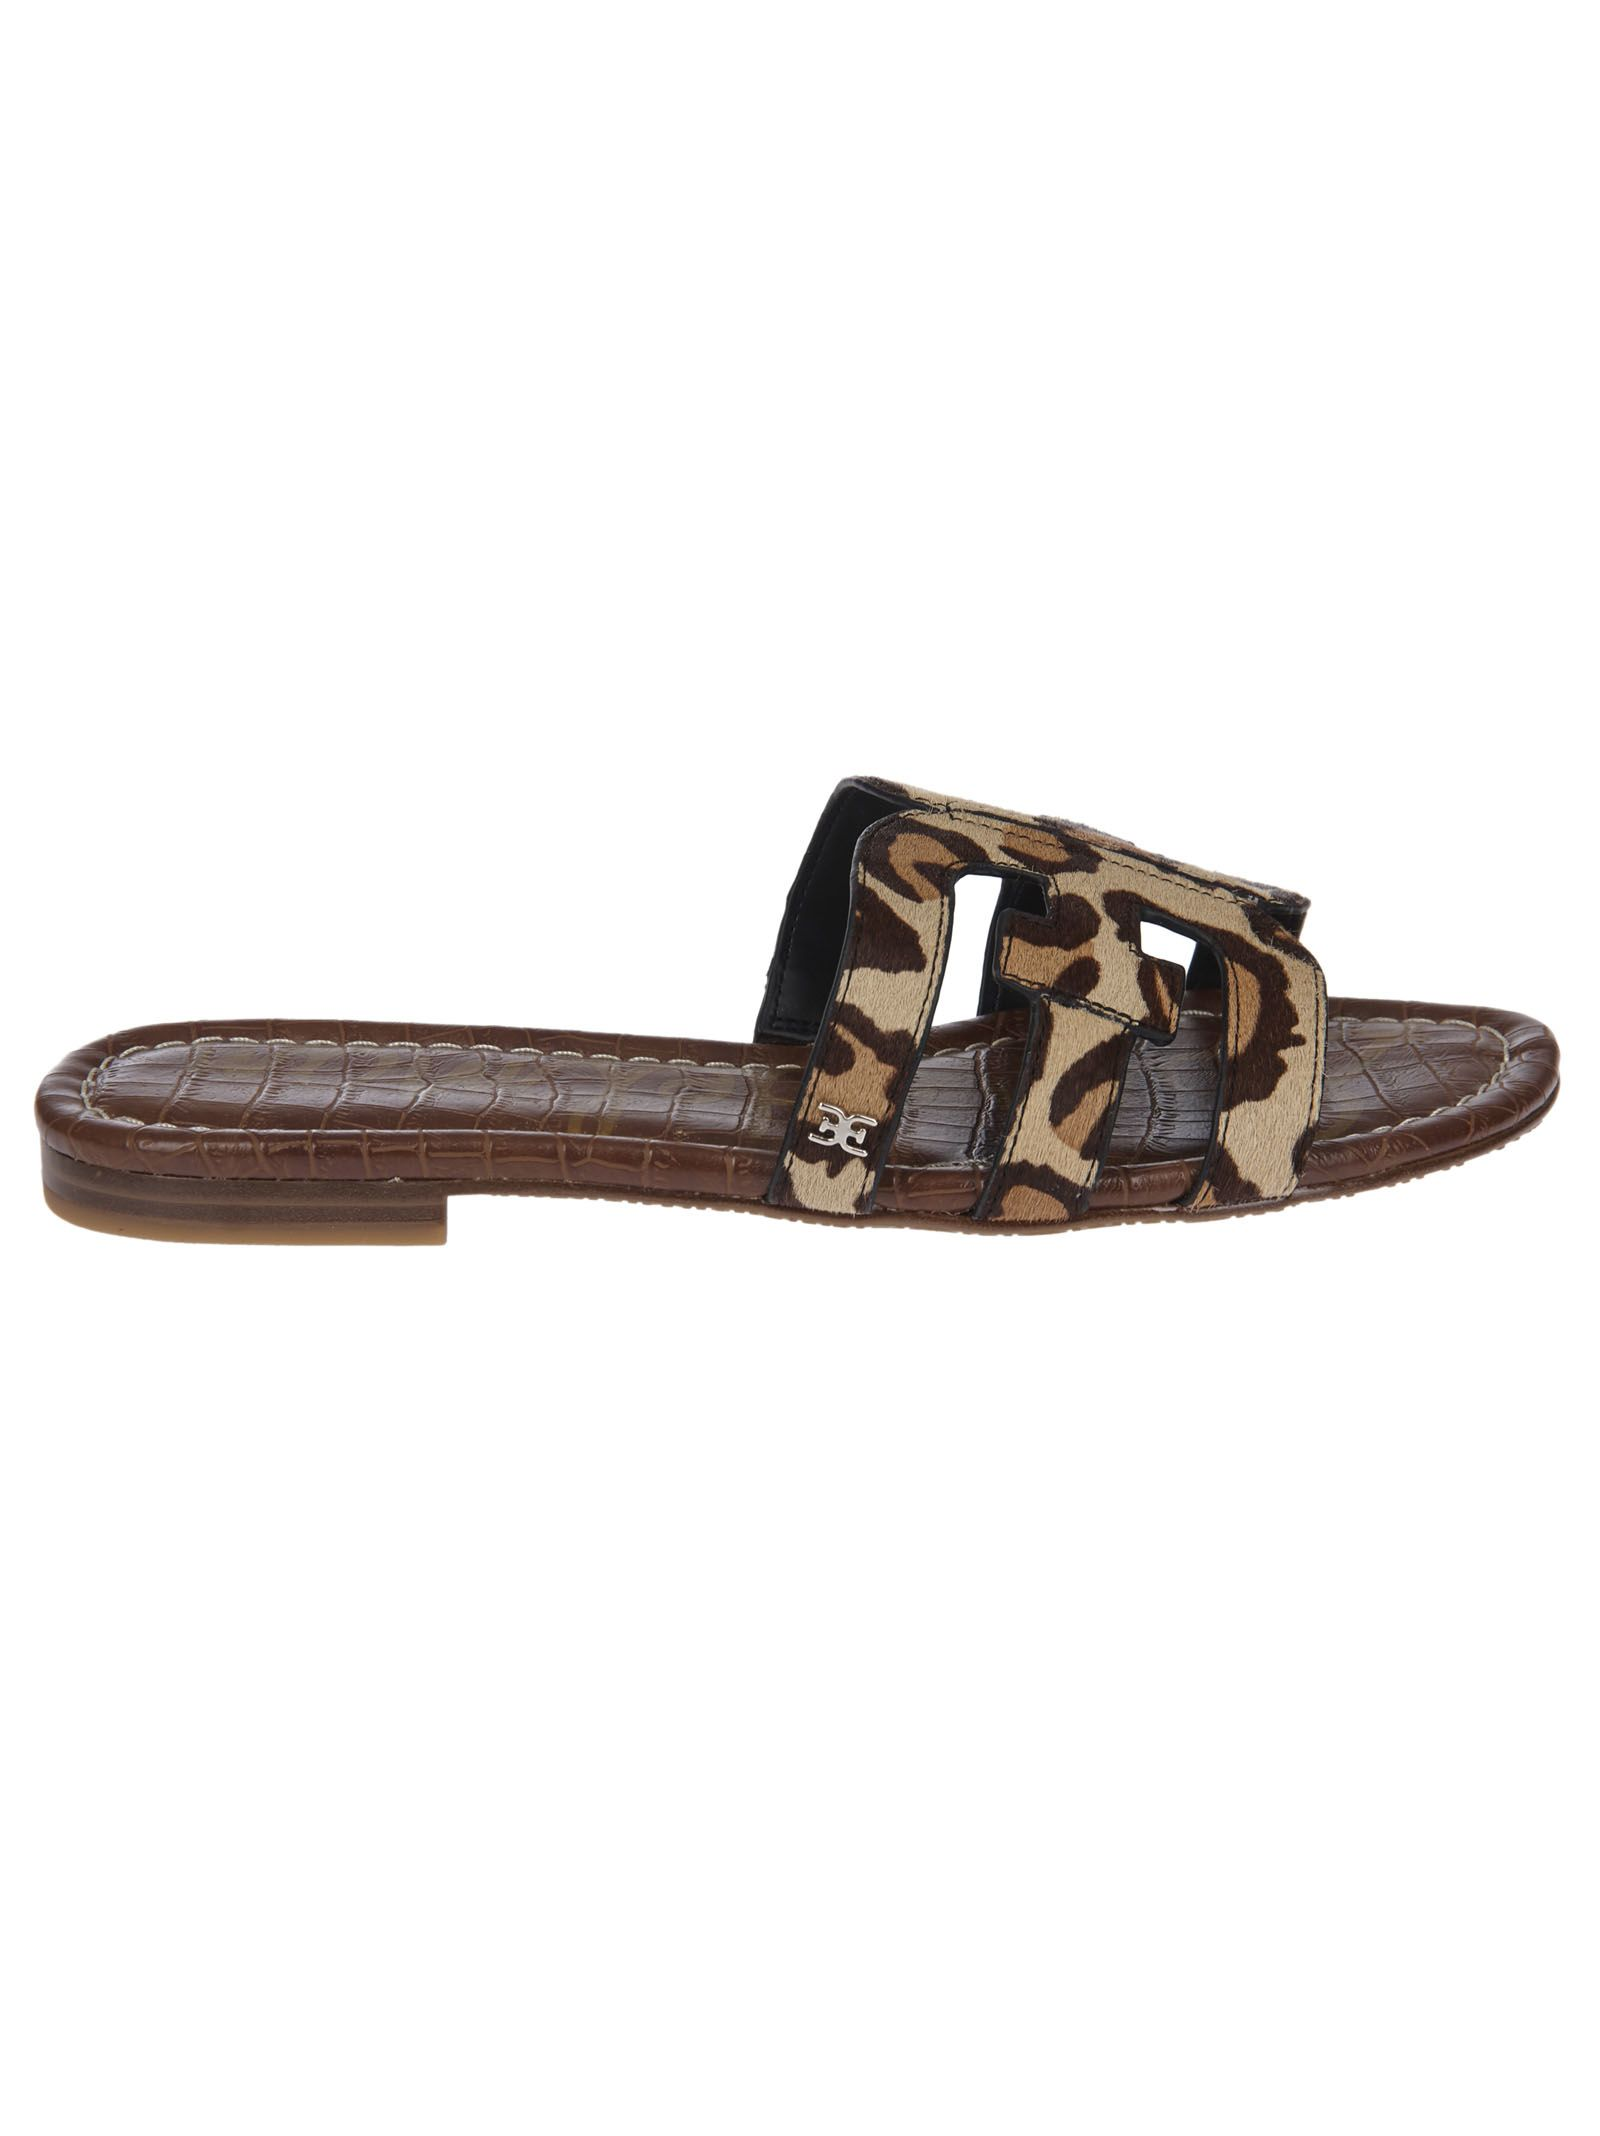 8cbaa9f94 Sam Edelman Sam Edelman Bay Double E Flat Sandals - Brown - 10858330 ...